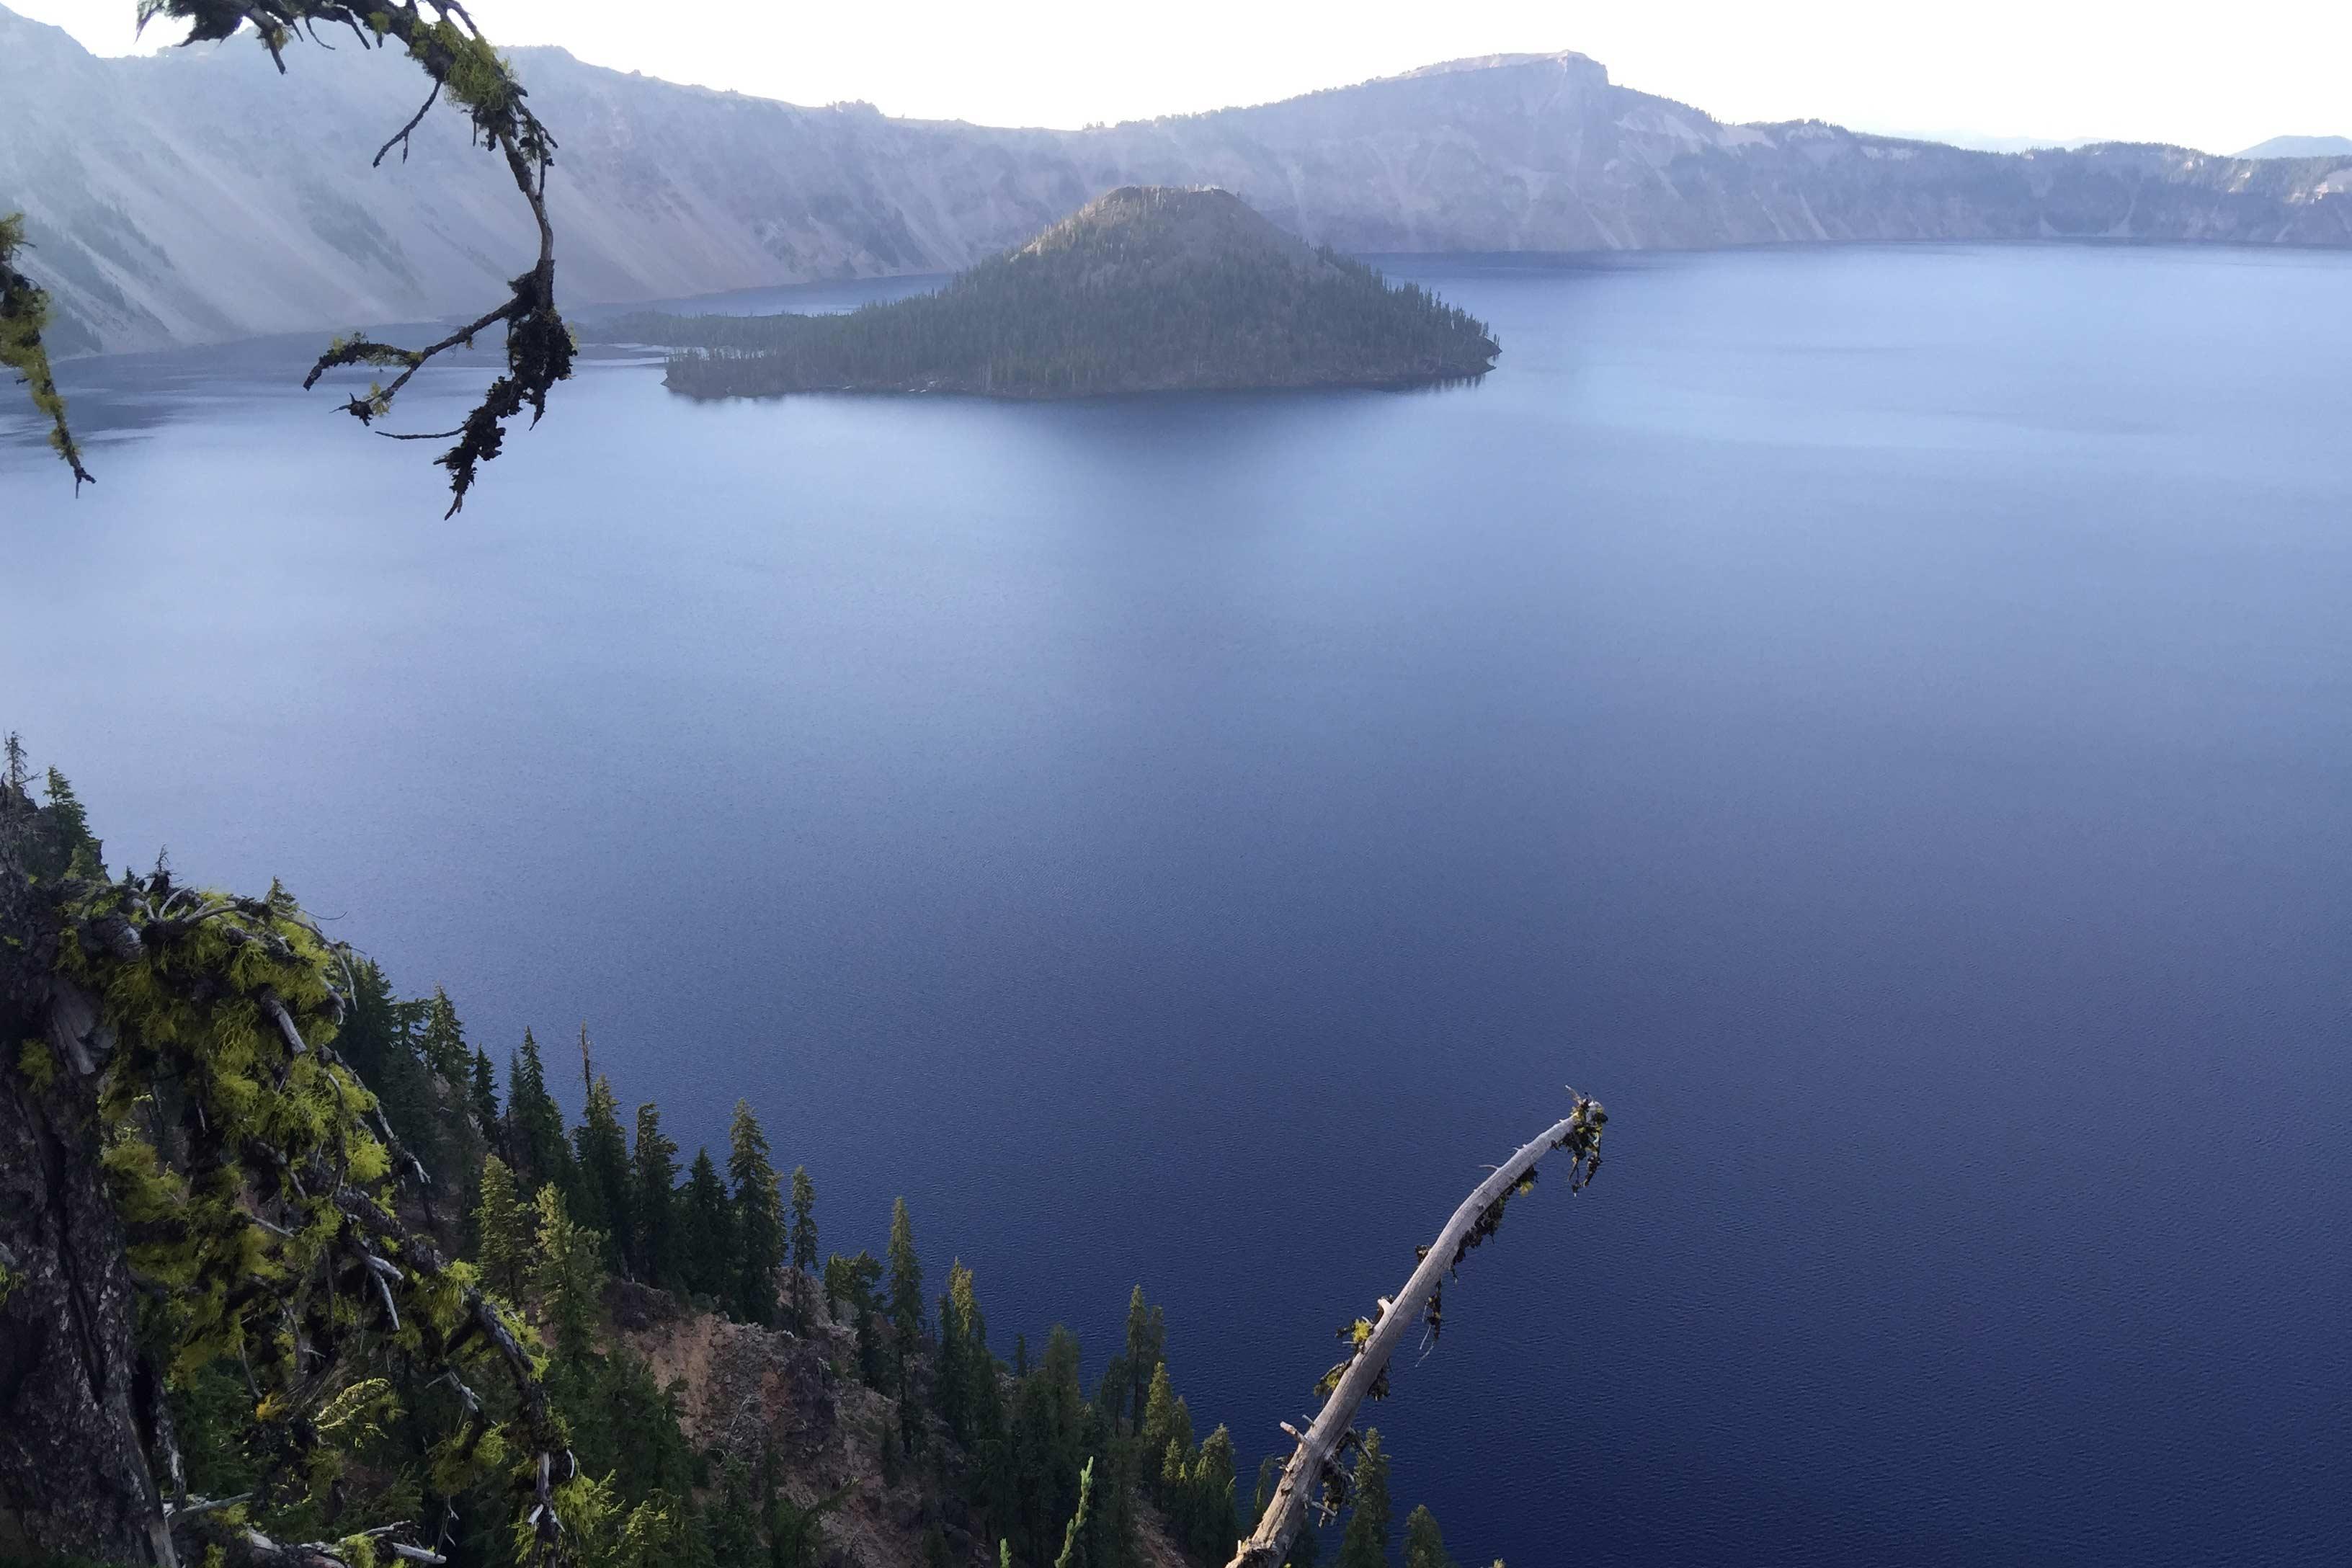 Crater Lake - the deepest lake in the US - lies just 37 miles away.